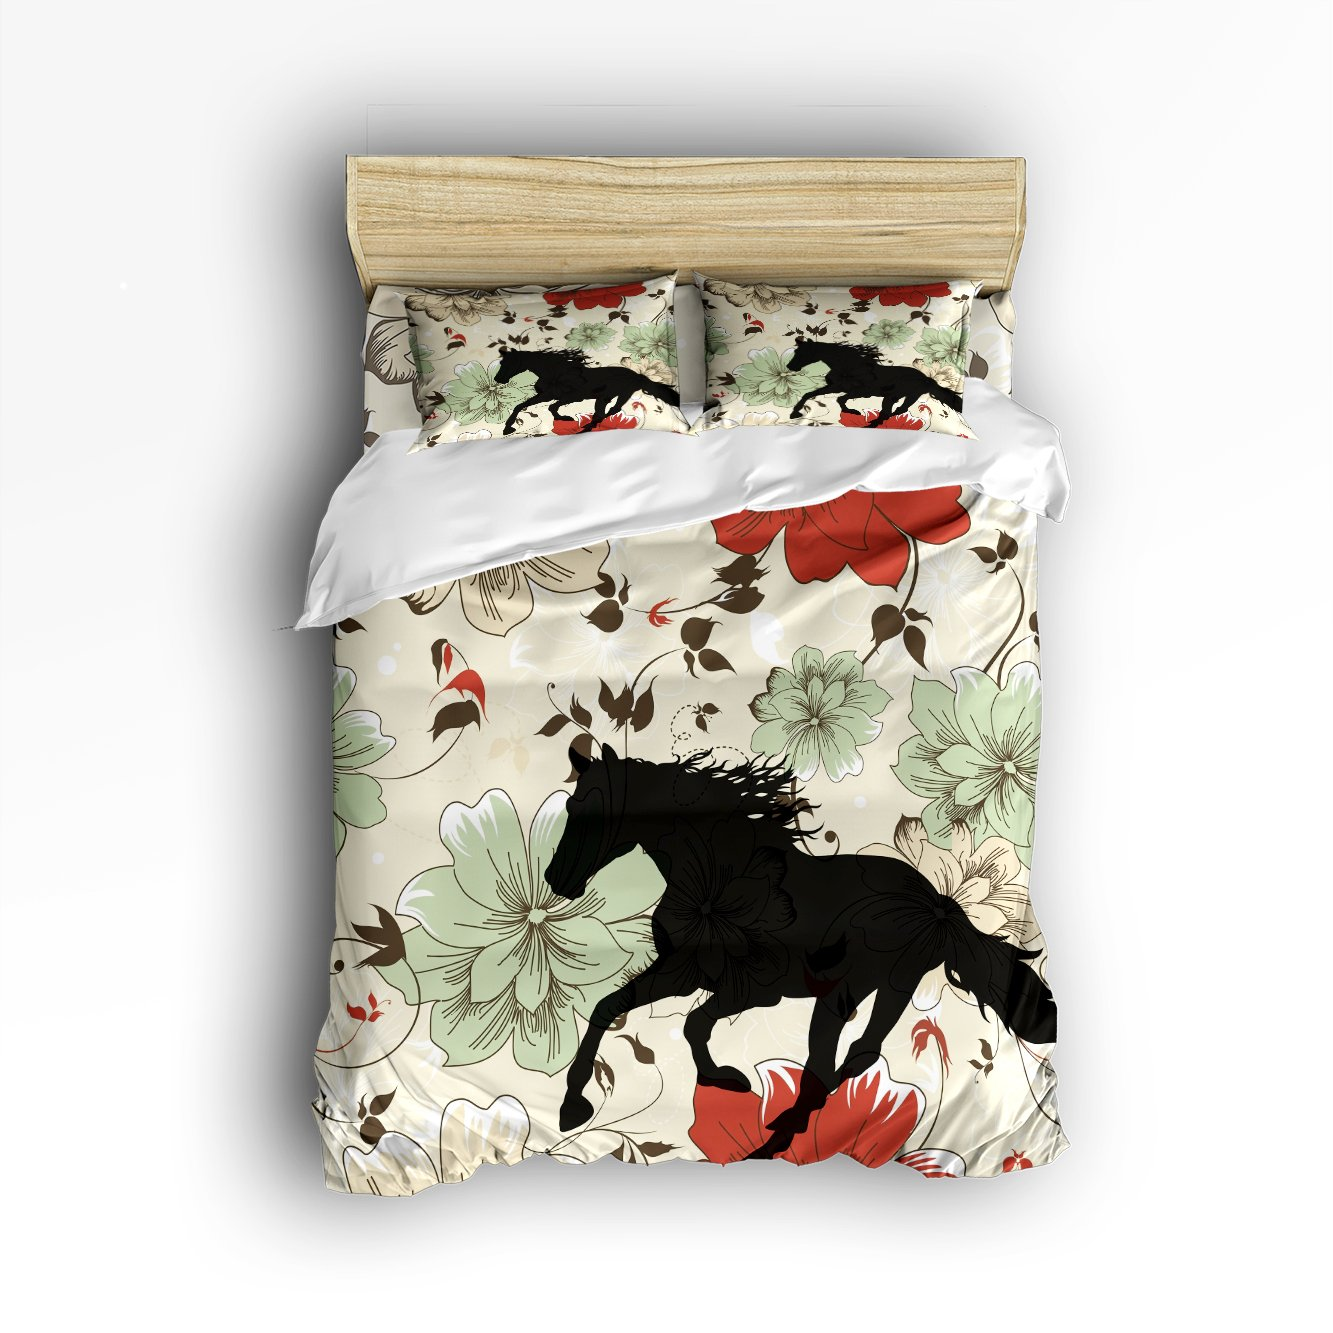 Ultra Soft 4 Pcs Bedding Sets Cotton Modern Luxury Bedding Colorful Flowers with Transparent Horse Pattern Printed Home Comforter Bedspread Duvet Cover Set King Size by KAROLA